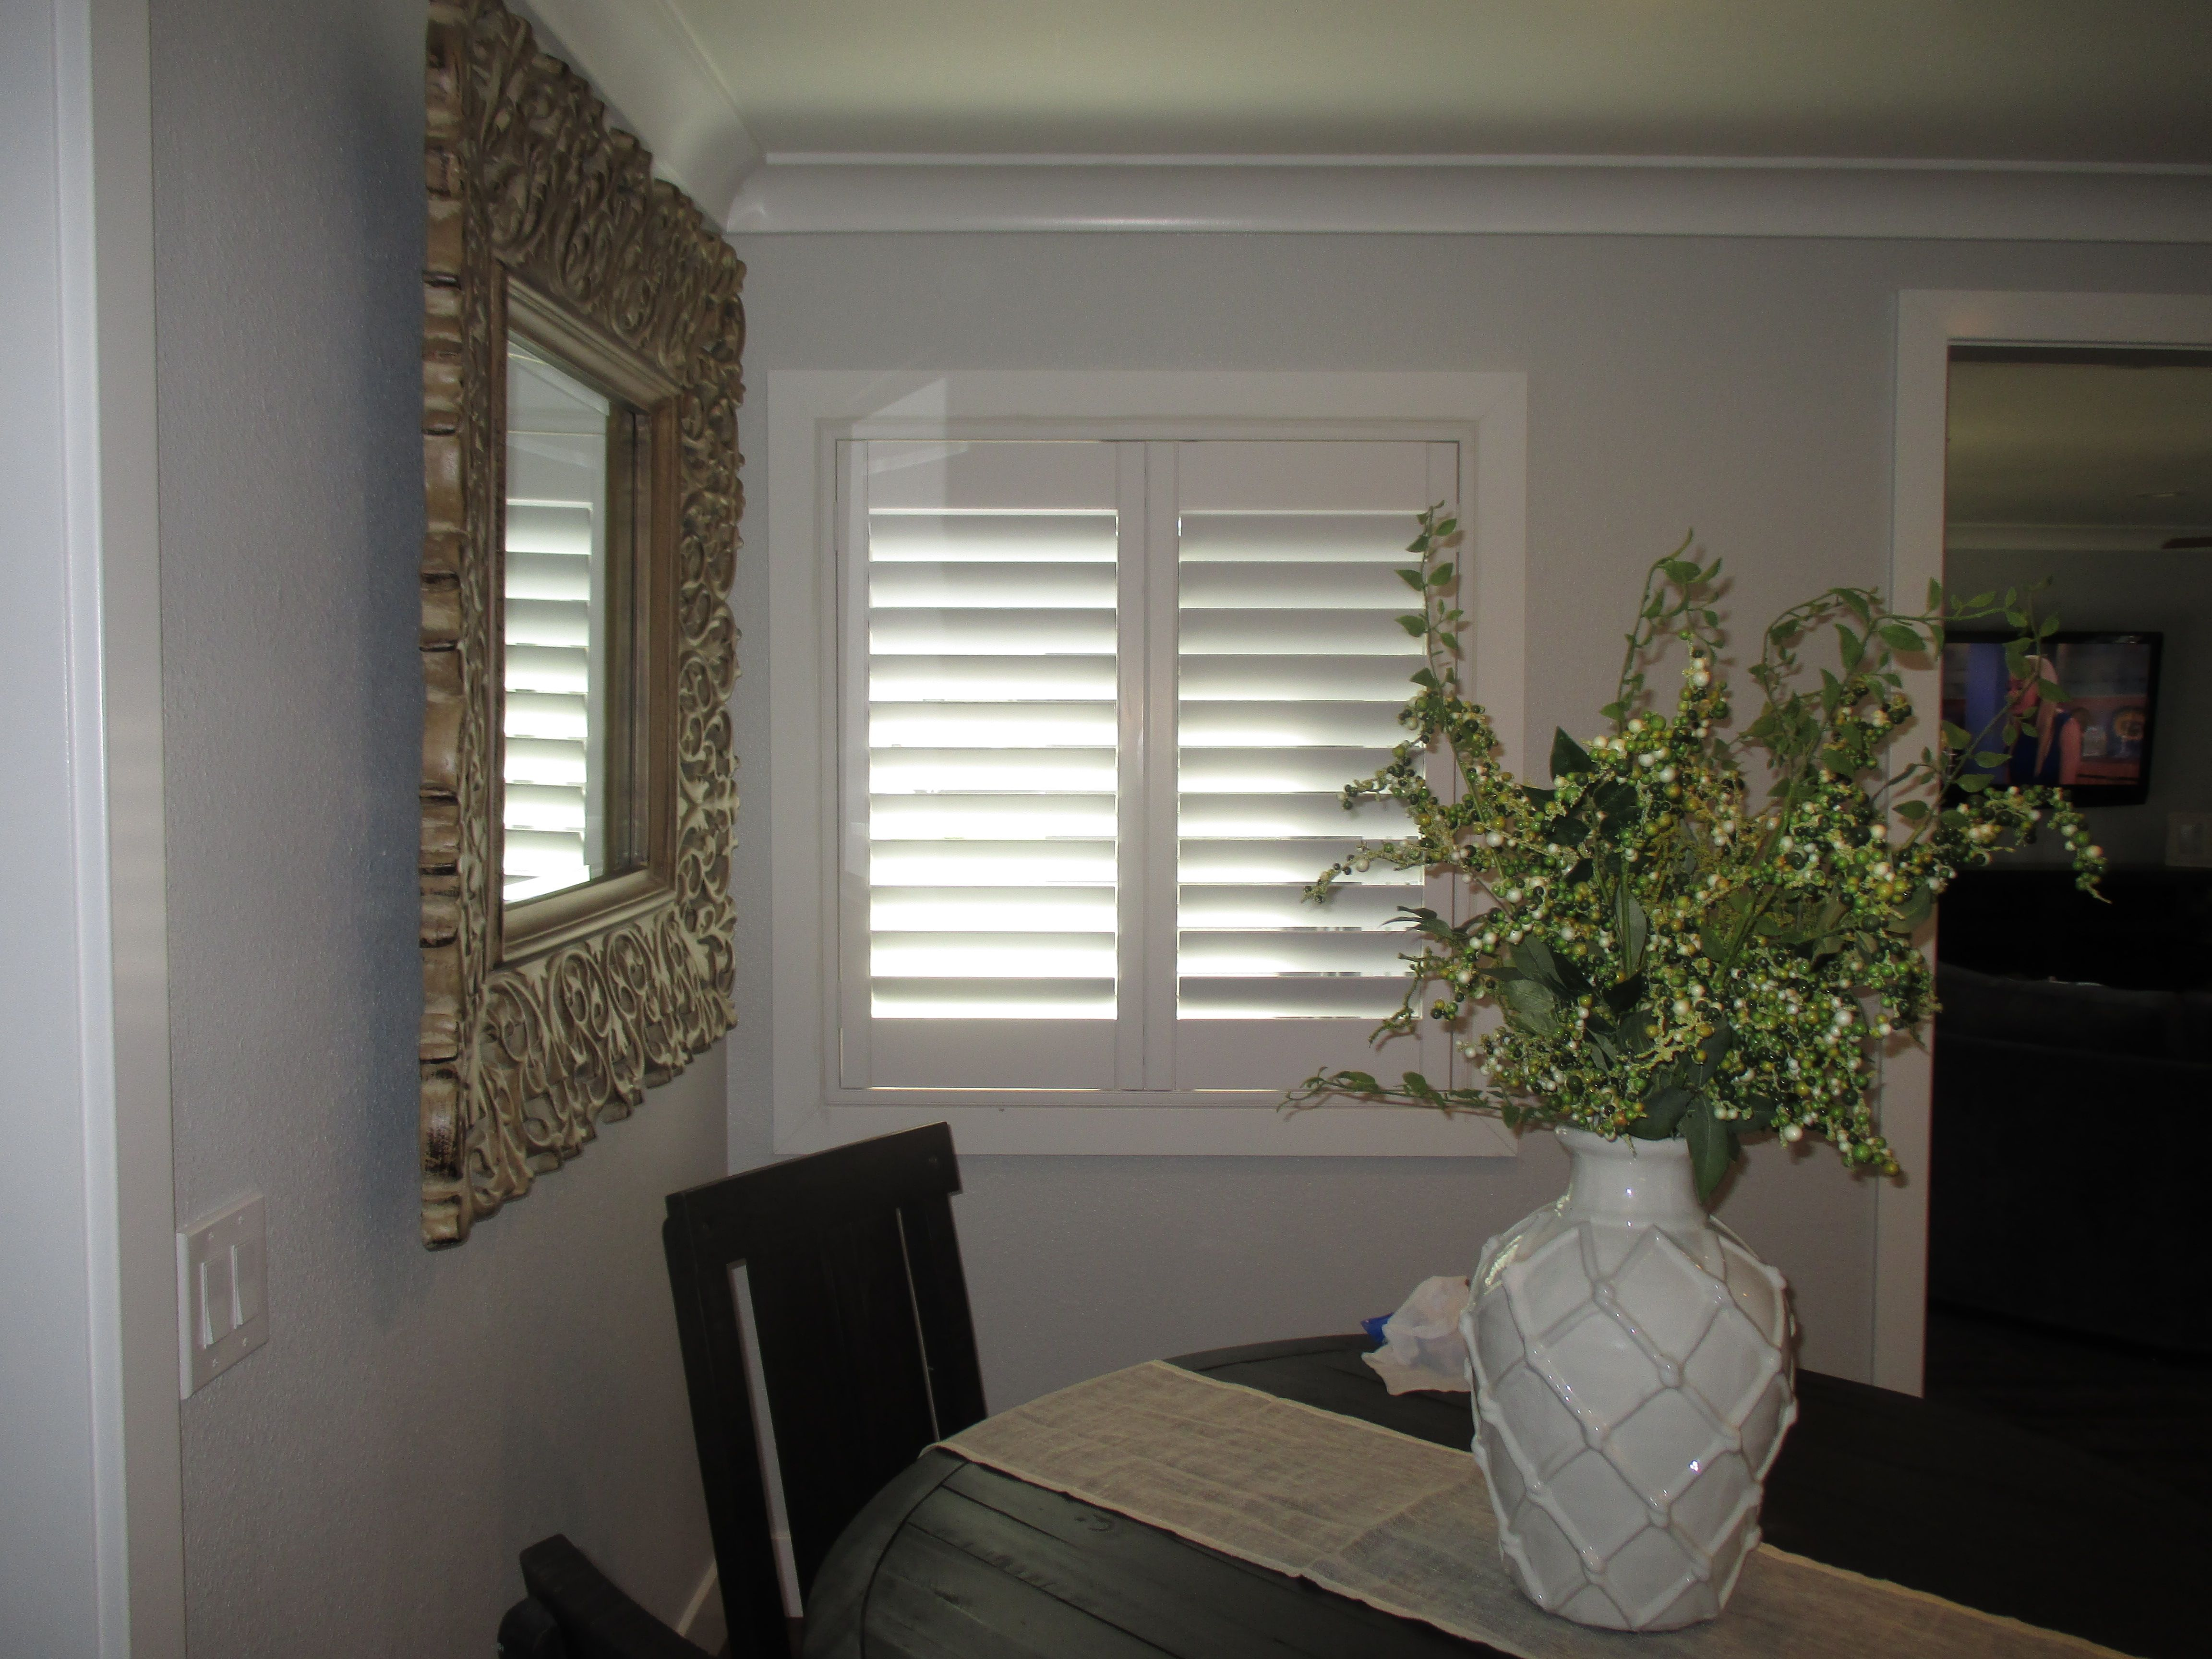 the interior than upholstered is there composite pad lovelier shutters pin anything window seat a and on